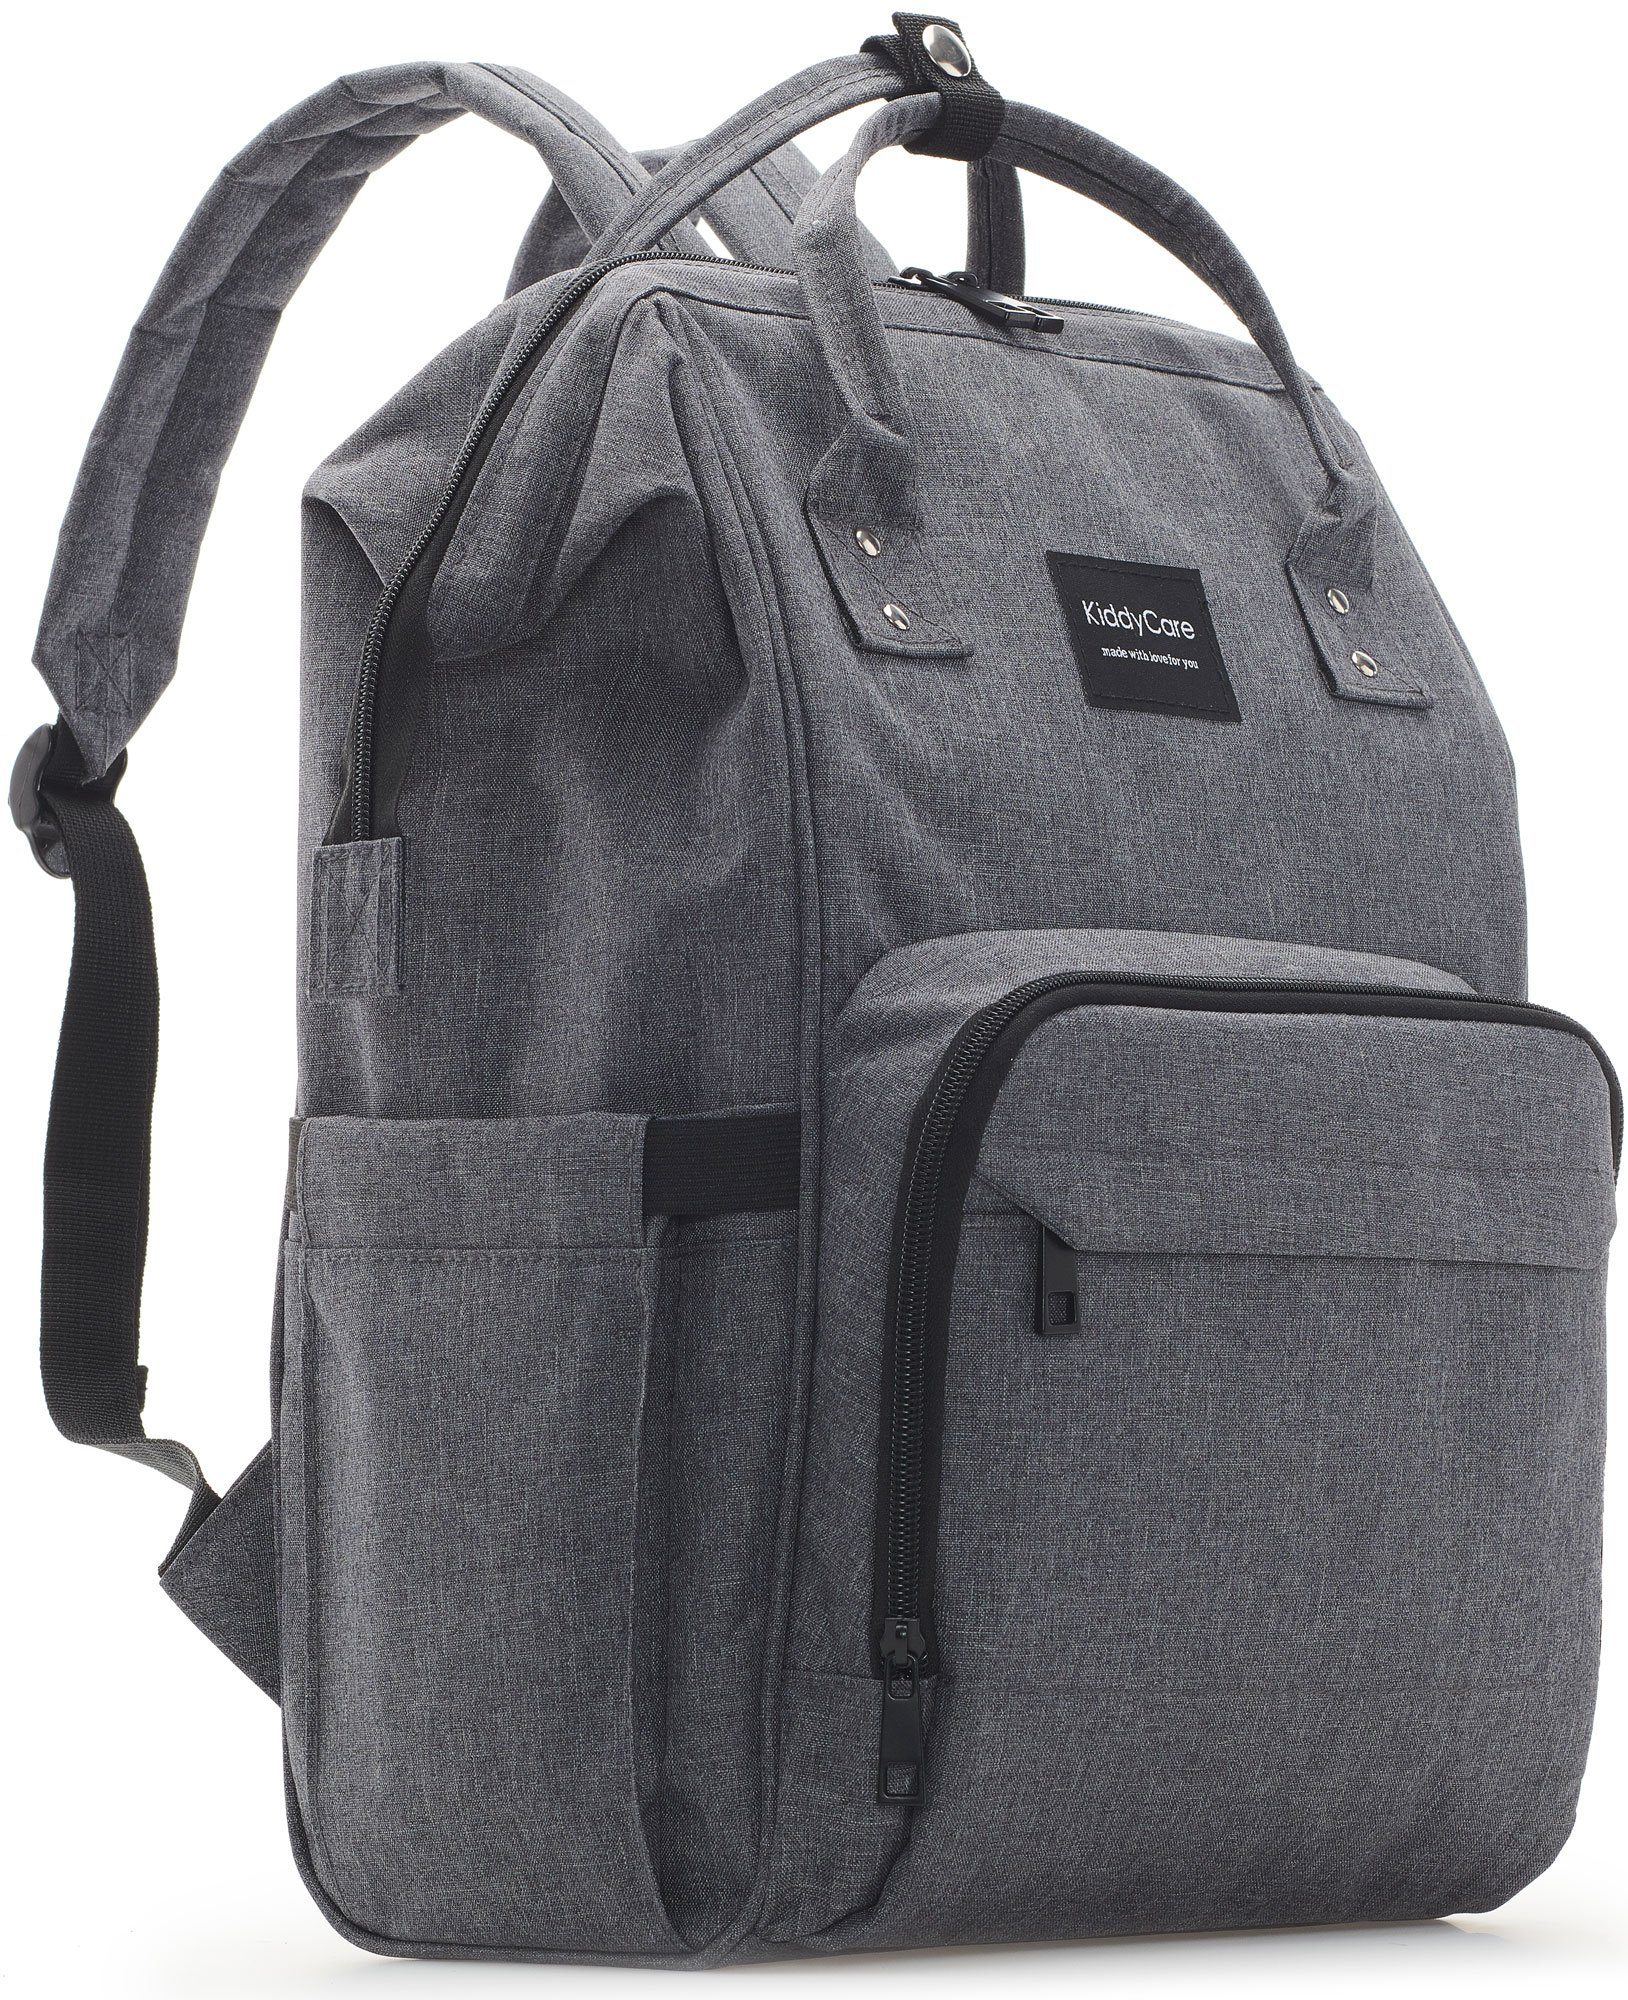 KiddyCare Diaper Bag Backpack - Multi-Function Waterproof Maternity Nappy Bags for Travel with Baby - Large Capacity, Durable and Stylish, Dark Gray